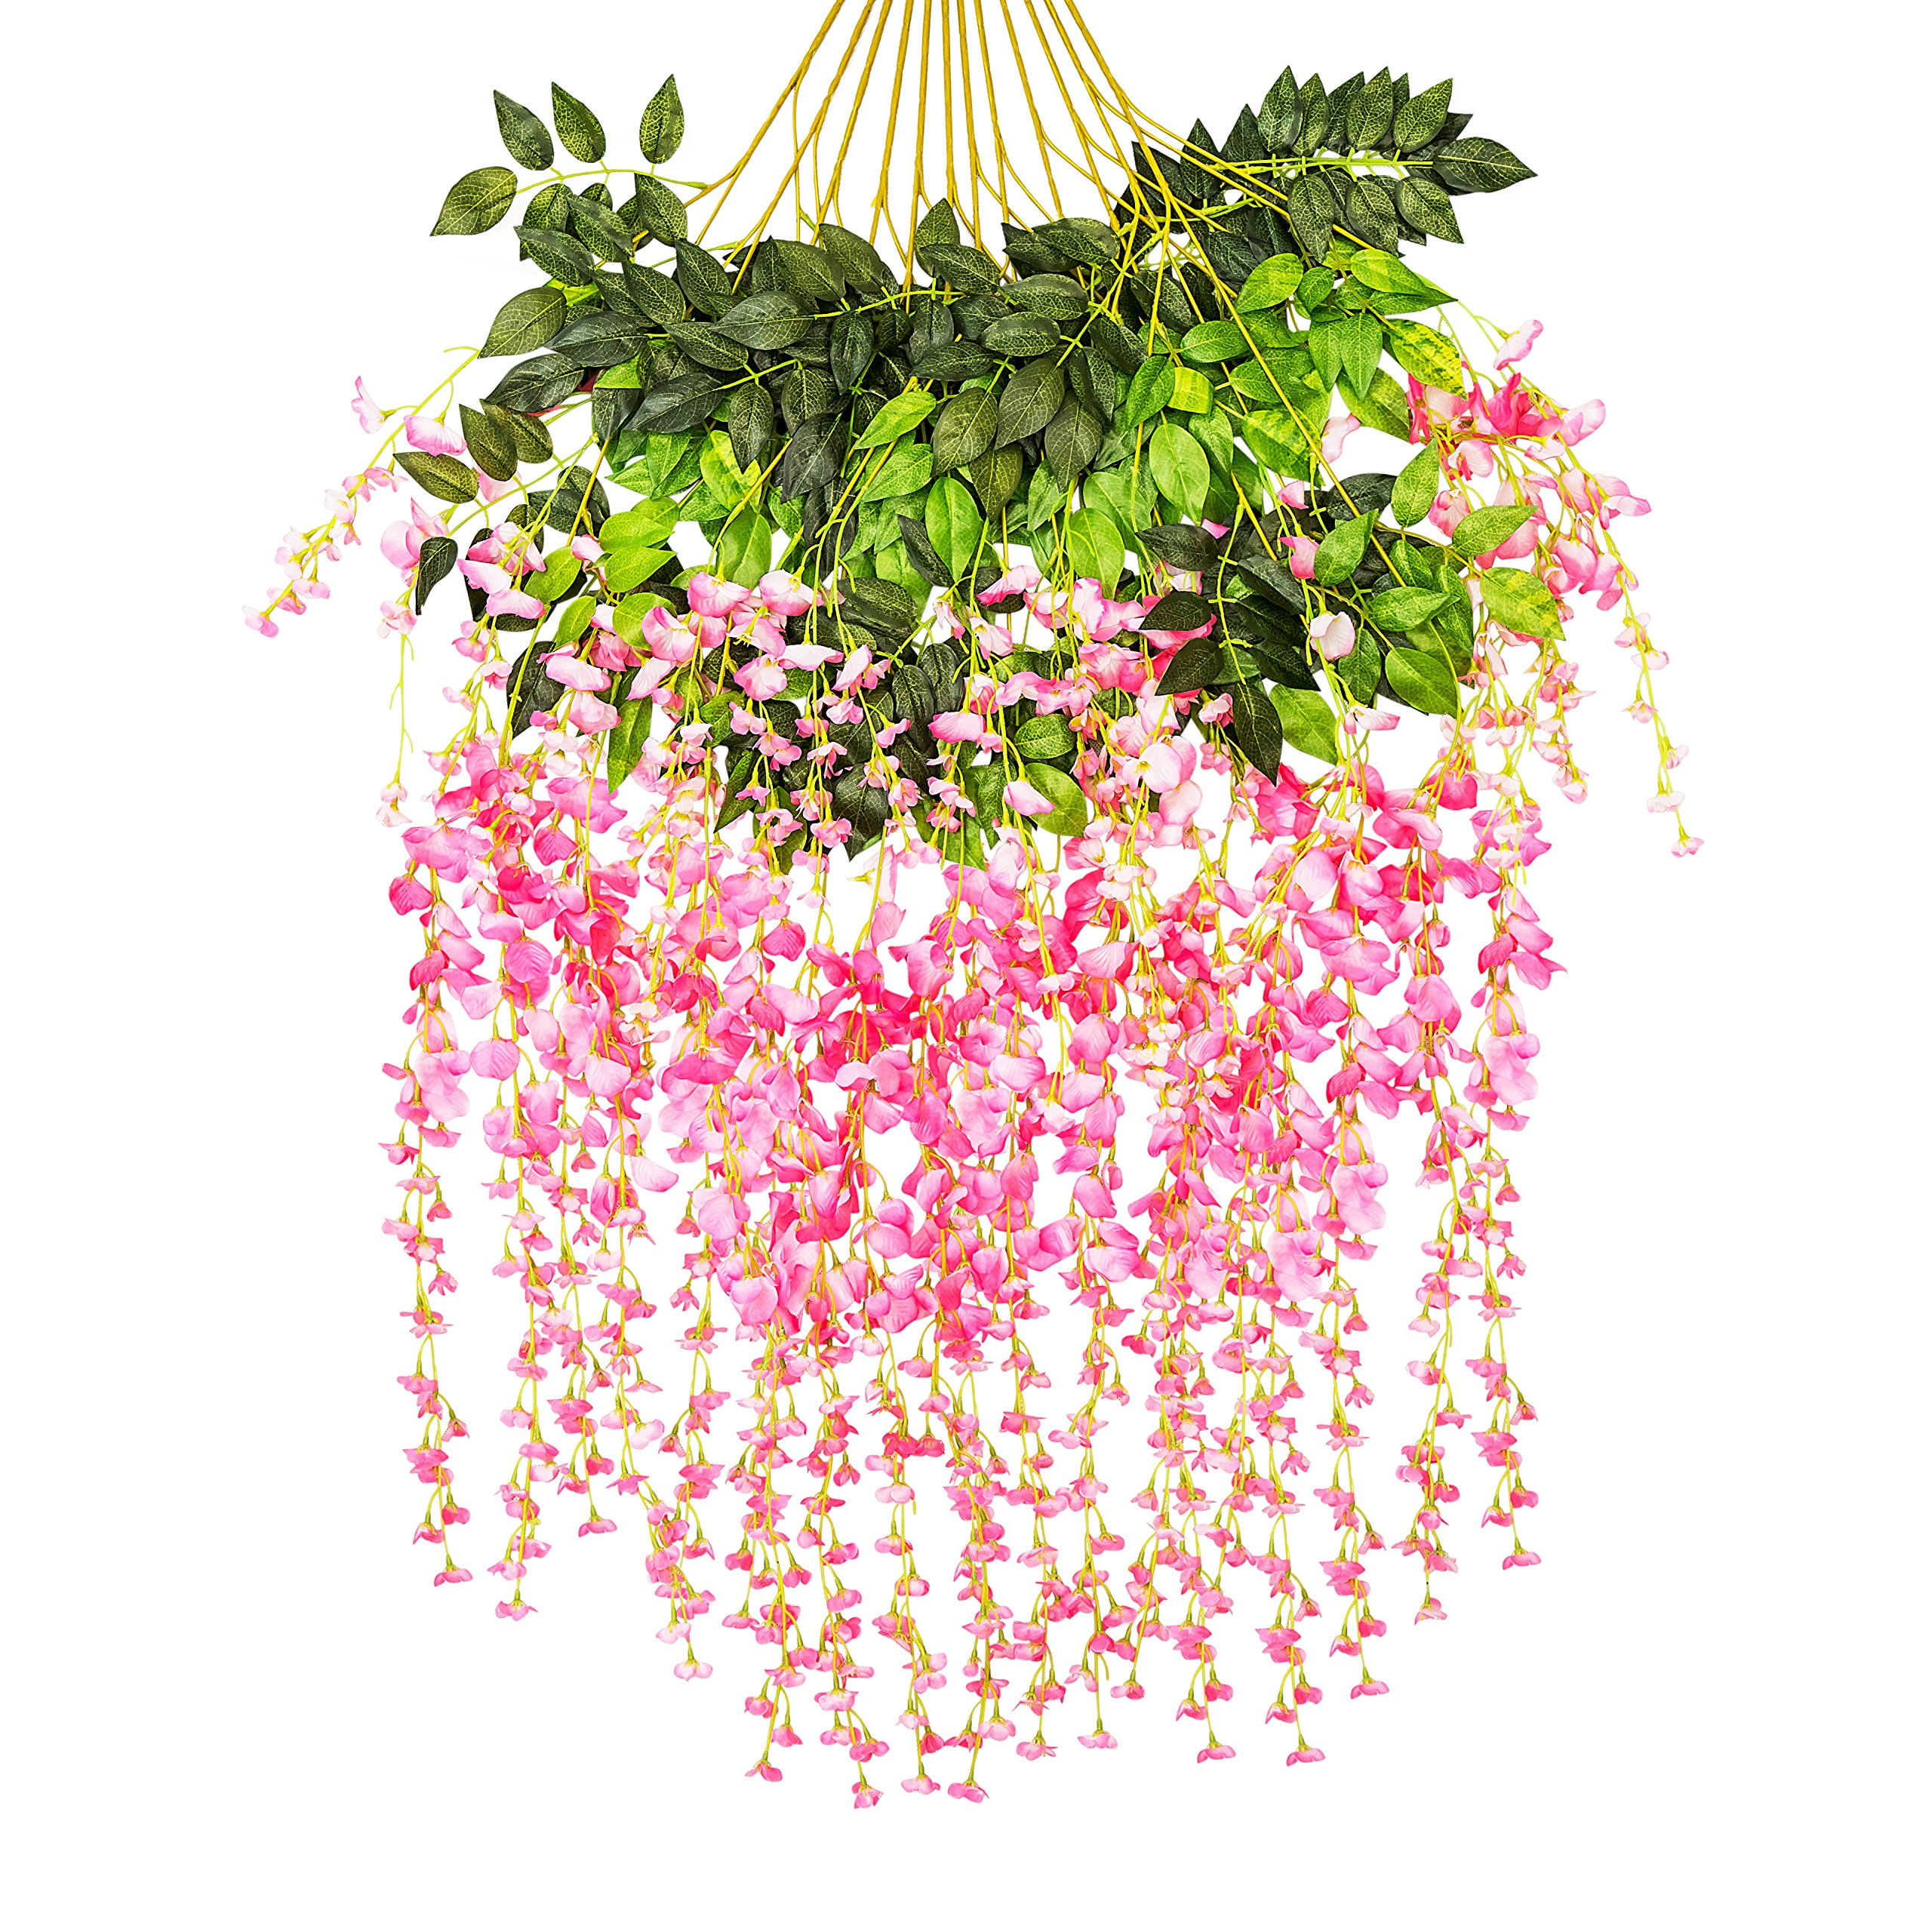 Ivyue 12sPack Wisteria Vine Artificial Silk Wisteria Lane Rattan Fake Wisteria Artificial Flowers Garland Hanging Flowers Wisteria Bush for Home Garden Party Wall Wedding Decoration 3.6feet (Pink)